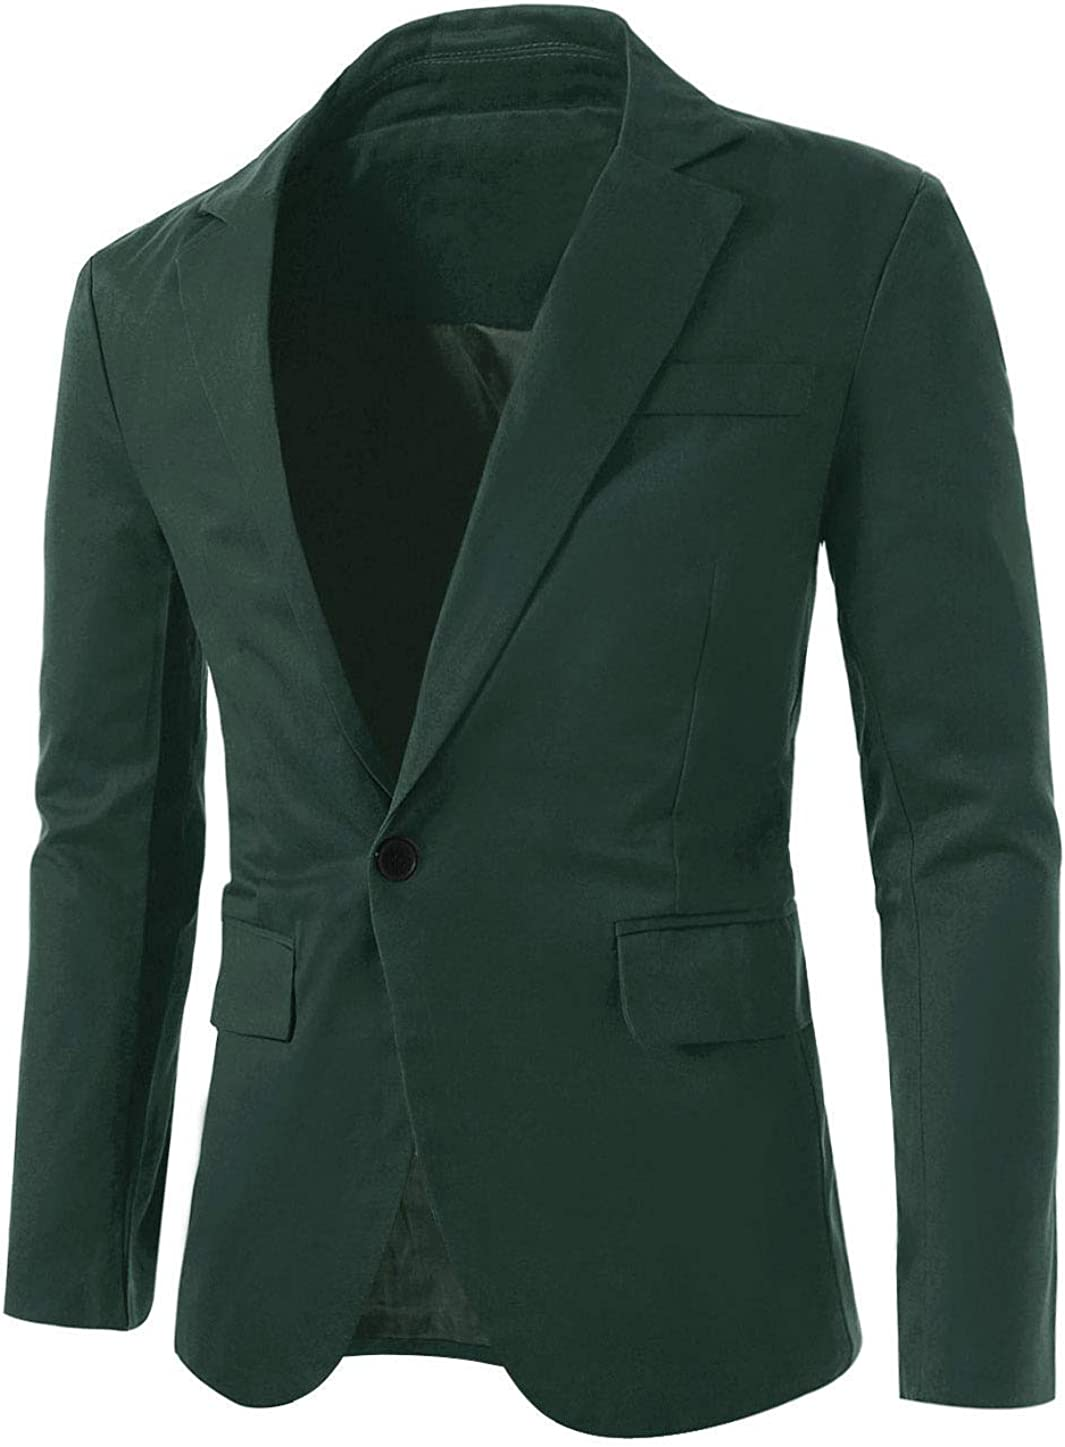 uxcell Men's Notched Lapel Button Slim Casual Fit Manufacturer In stock direct delivery Lightweight Sp